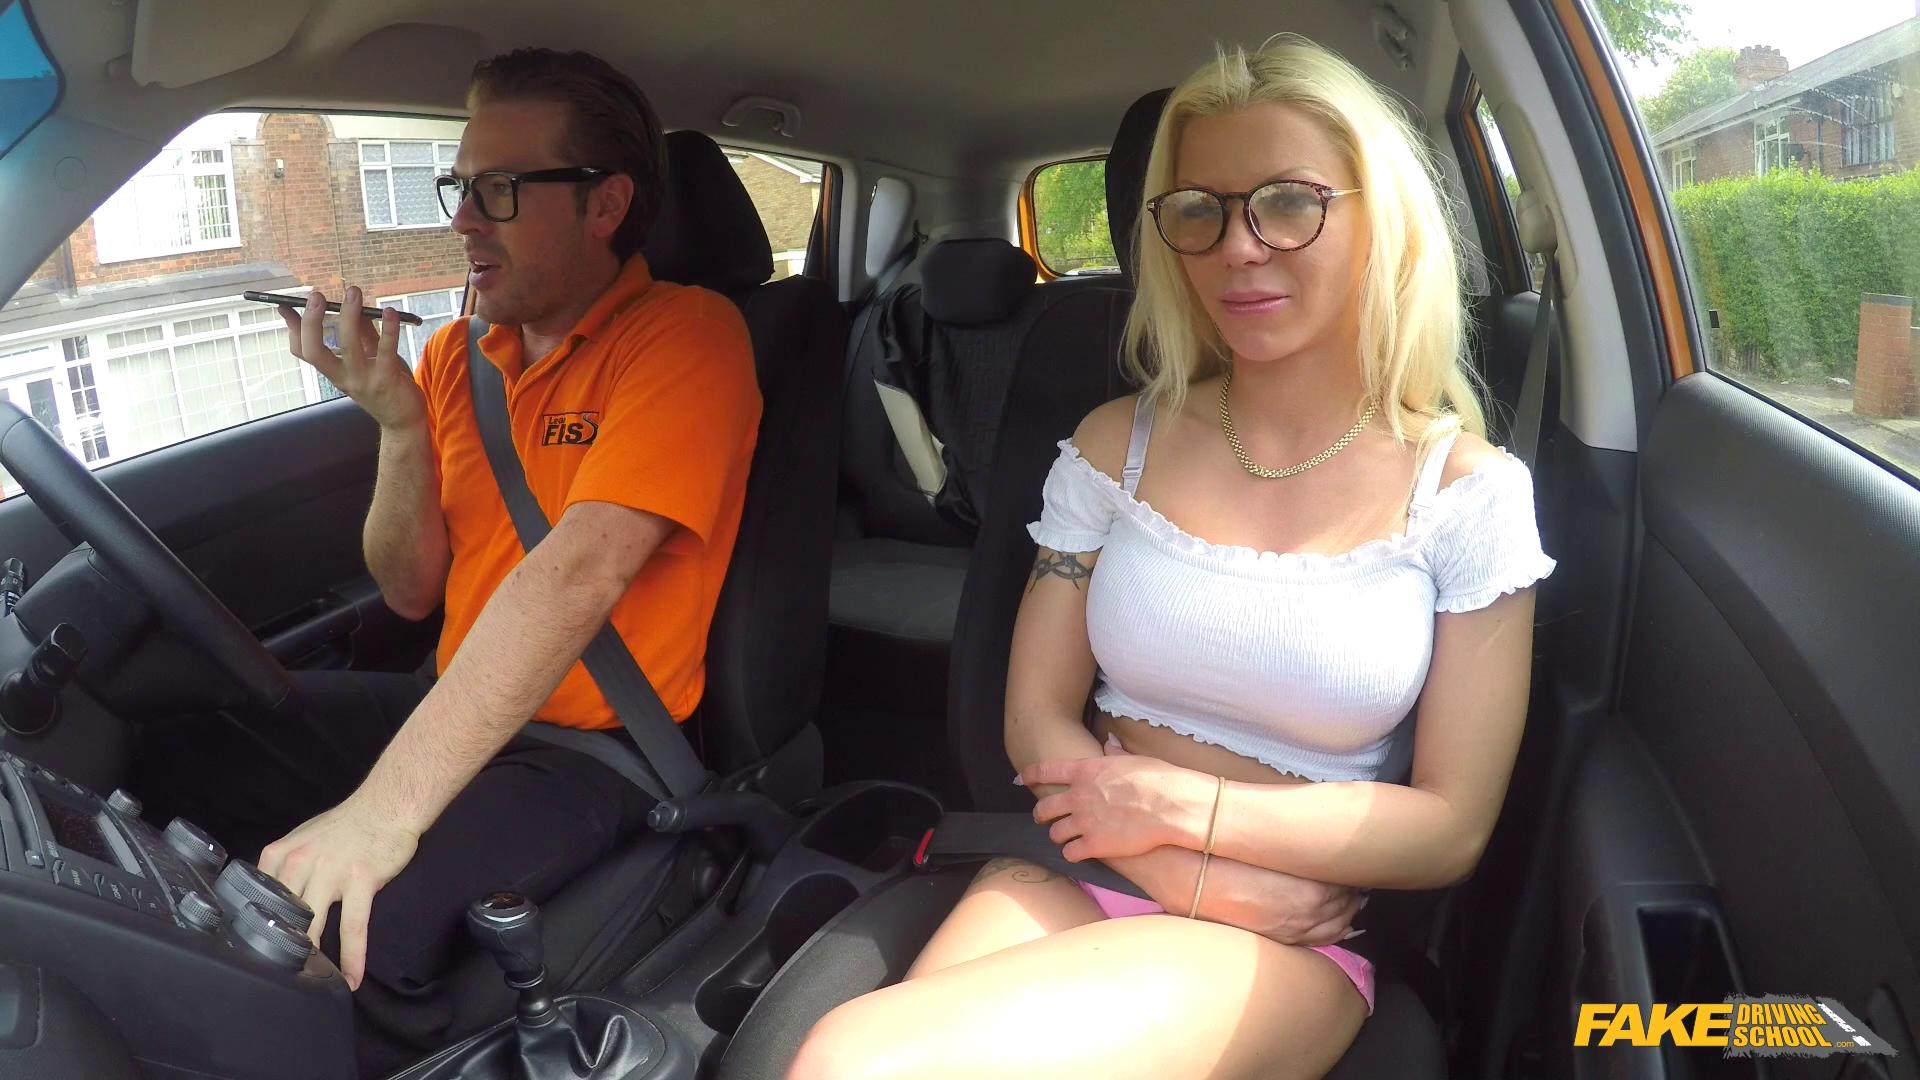 FakeDrivingSchool – Barbie Sins